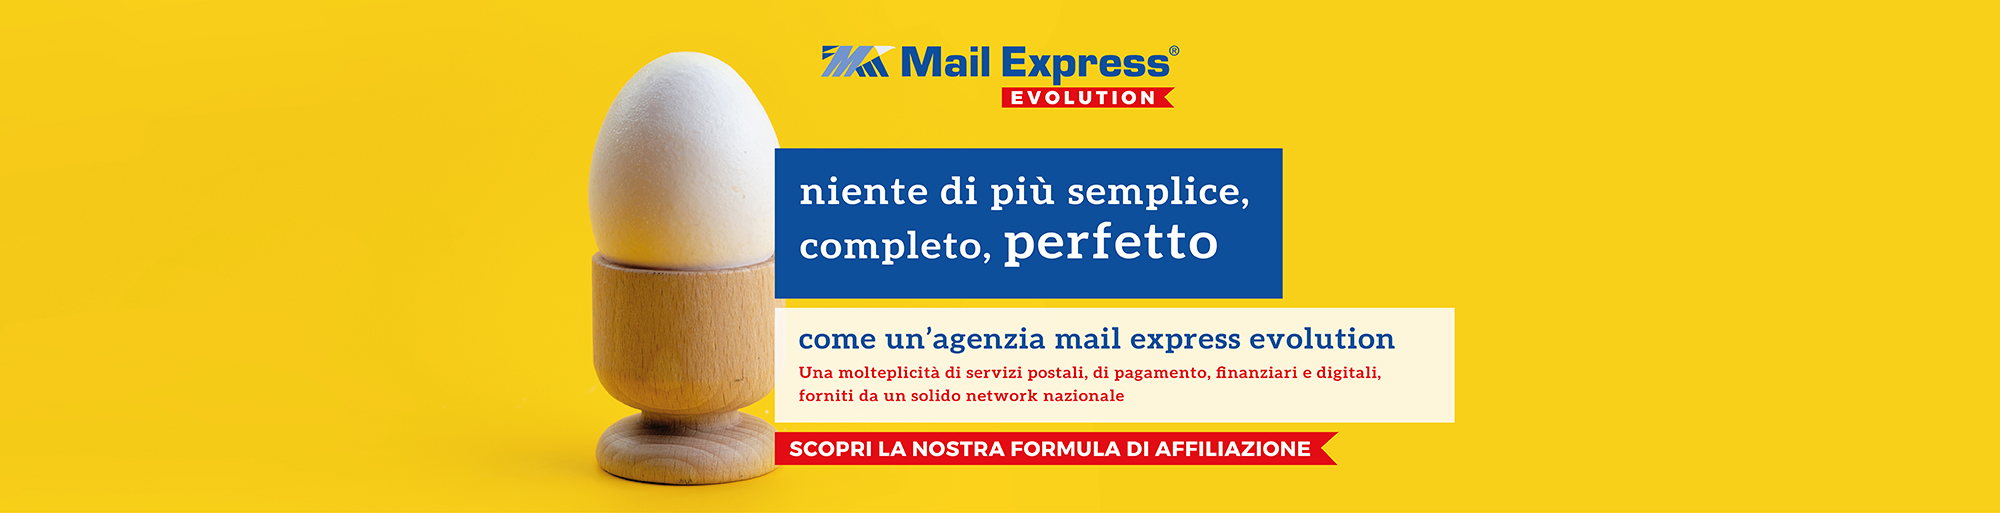 Franchising Mail Express